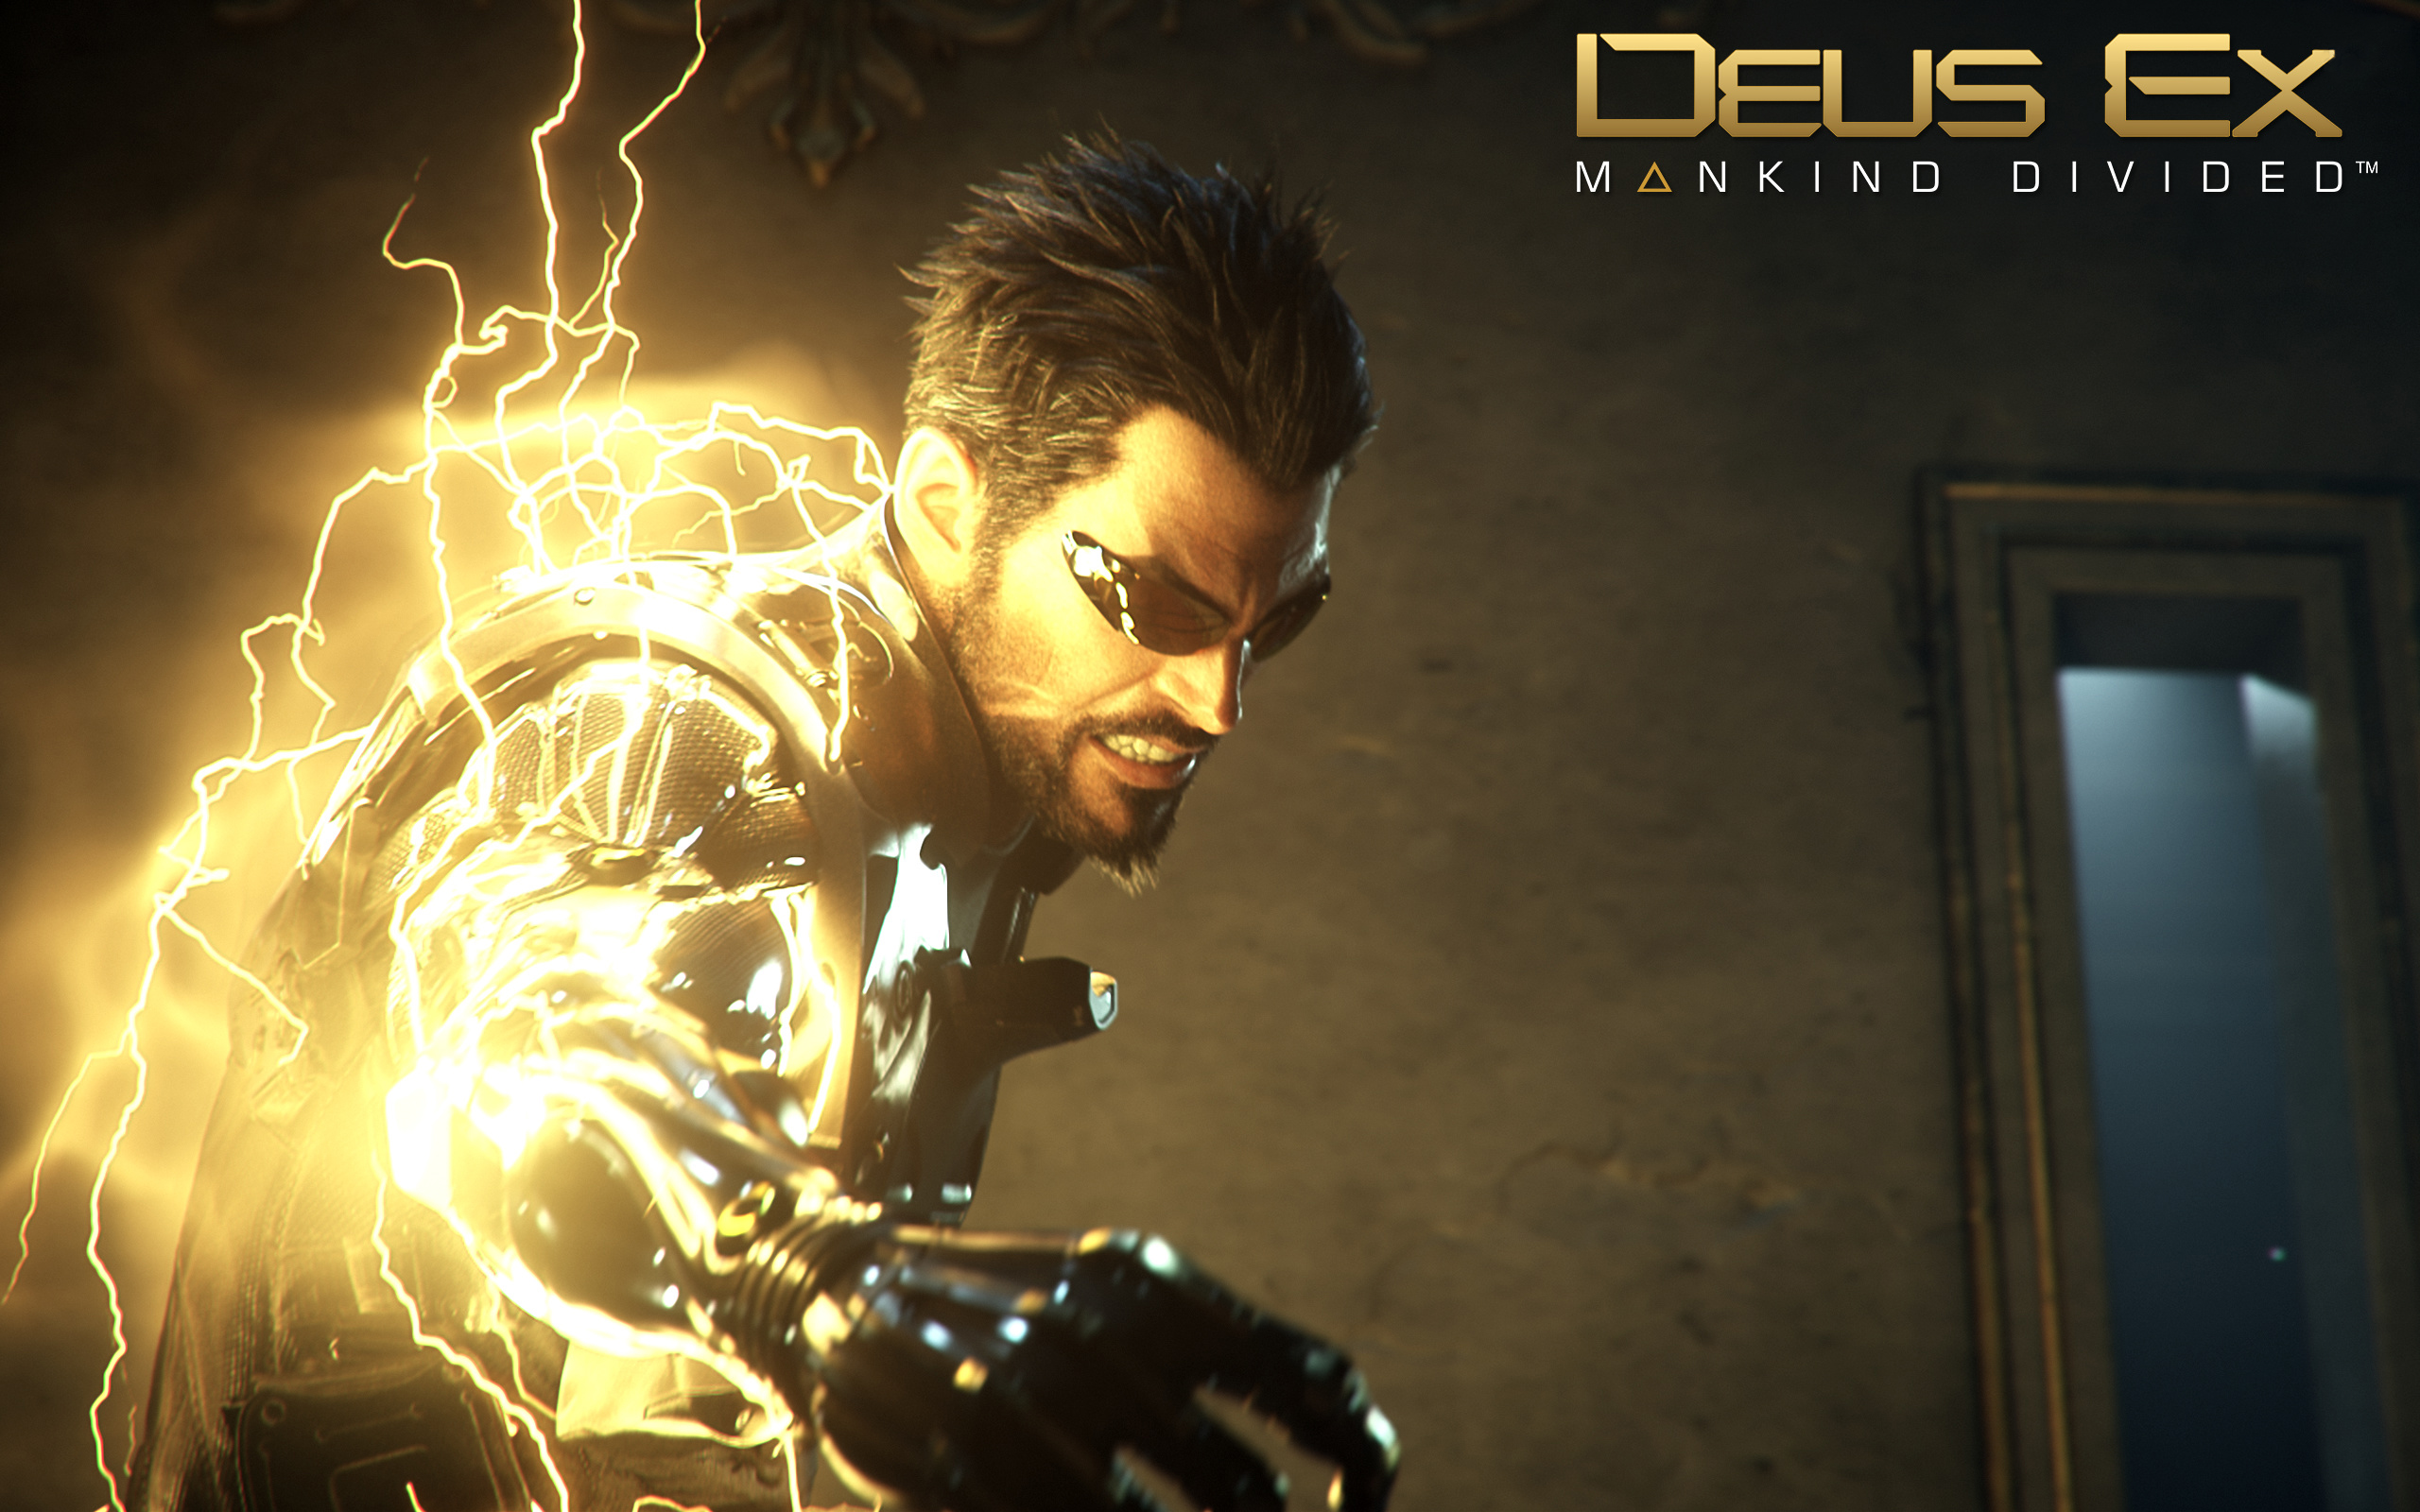 deus ex mankind divided wallpapers pictures images